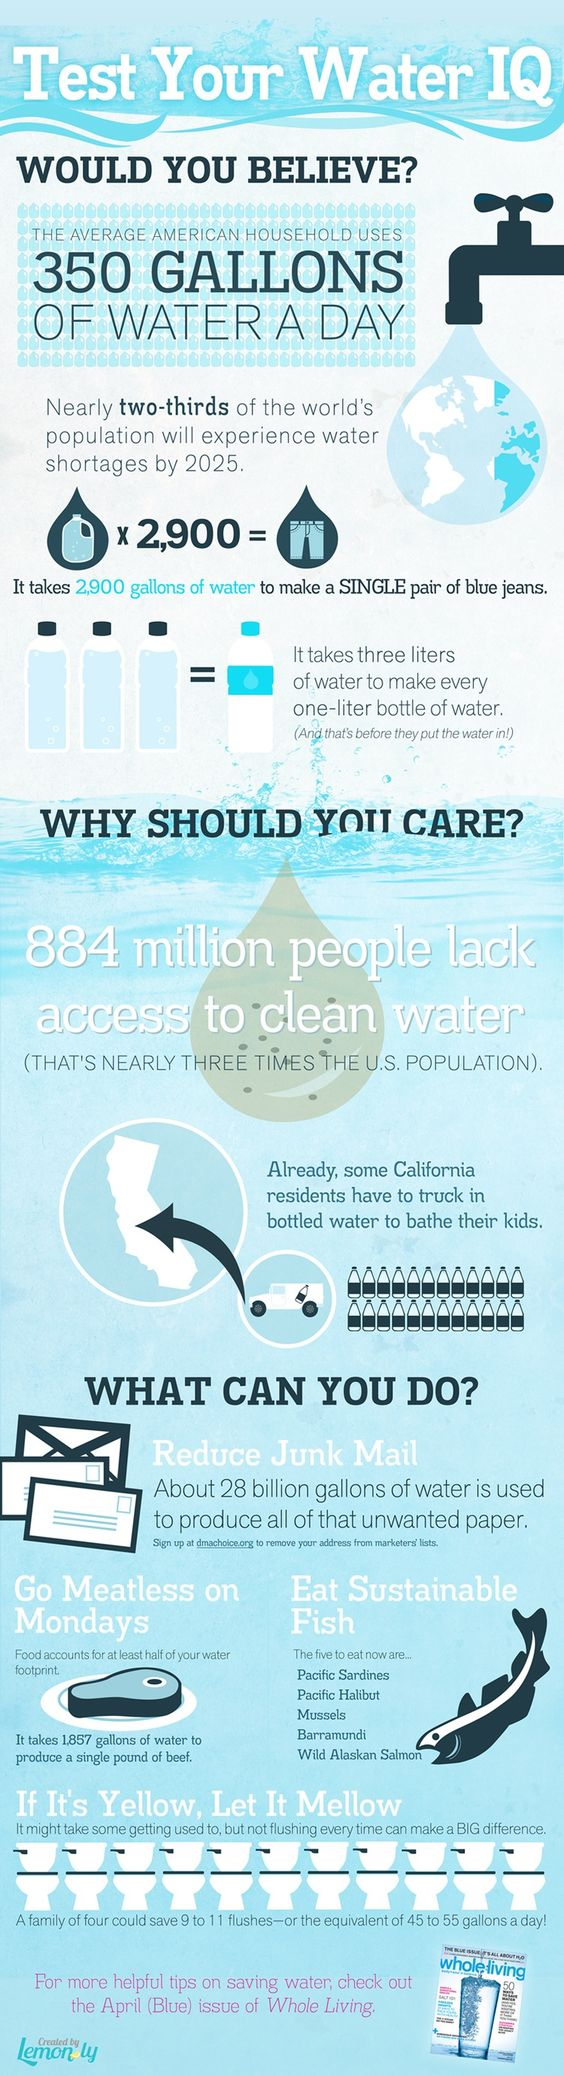 Infographic courtesy, from Whole Living magazine, on US water conservation and awareness. [Source: Whole Living, US,  http://goo.gl/1SQSU, 22 March 2012]